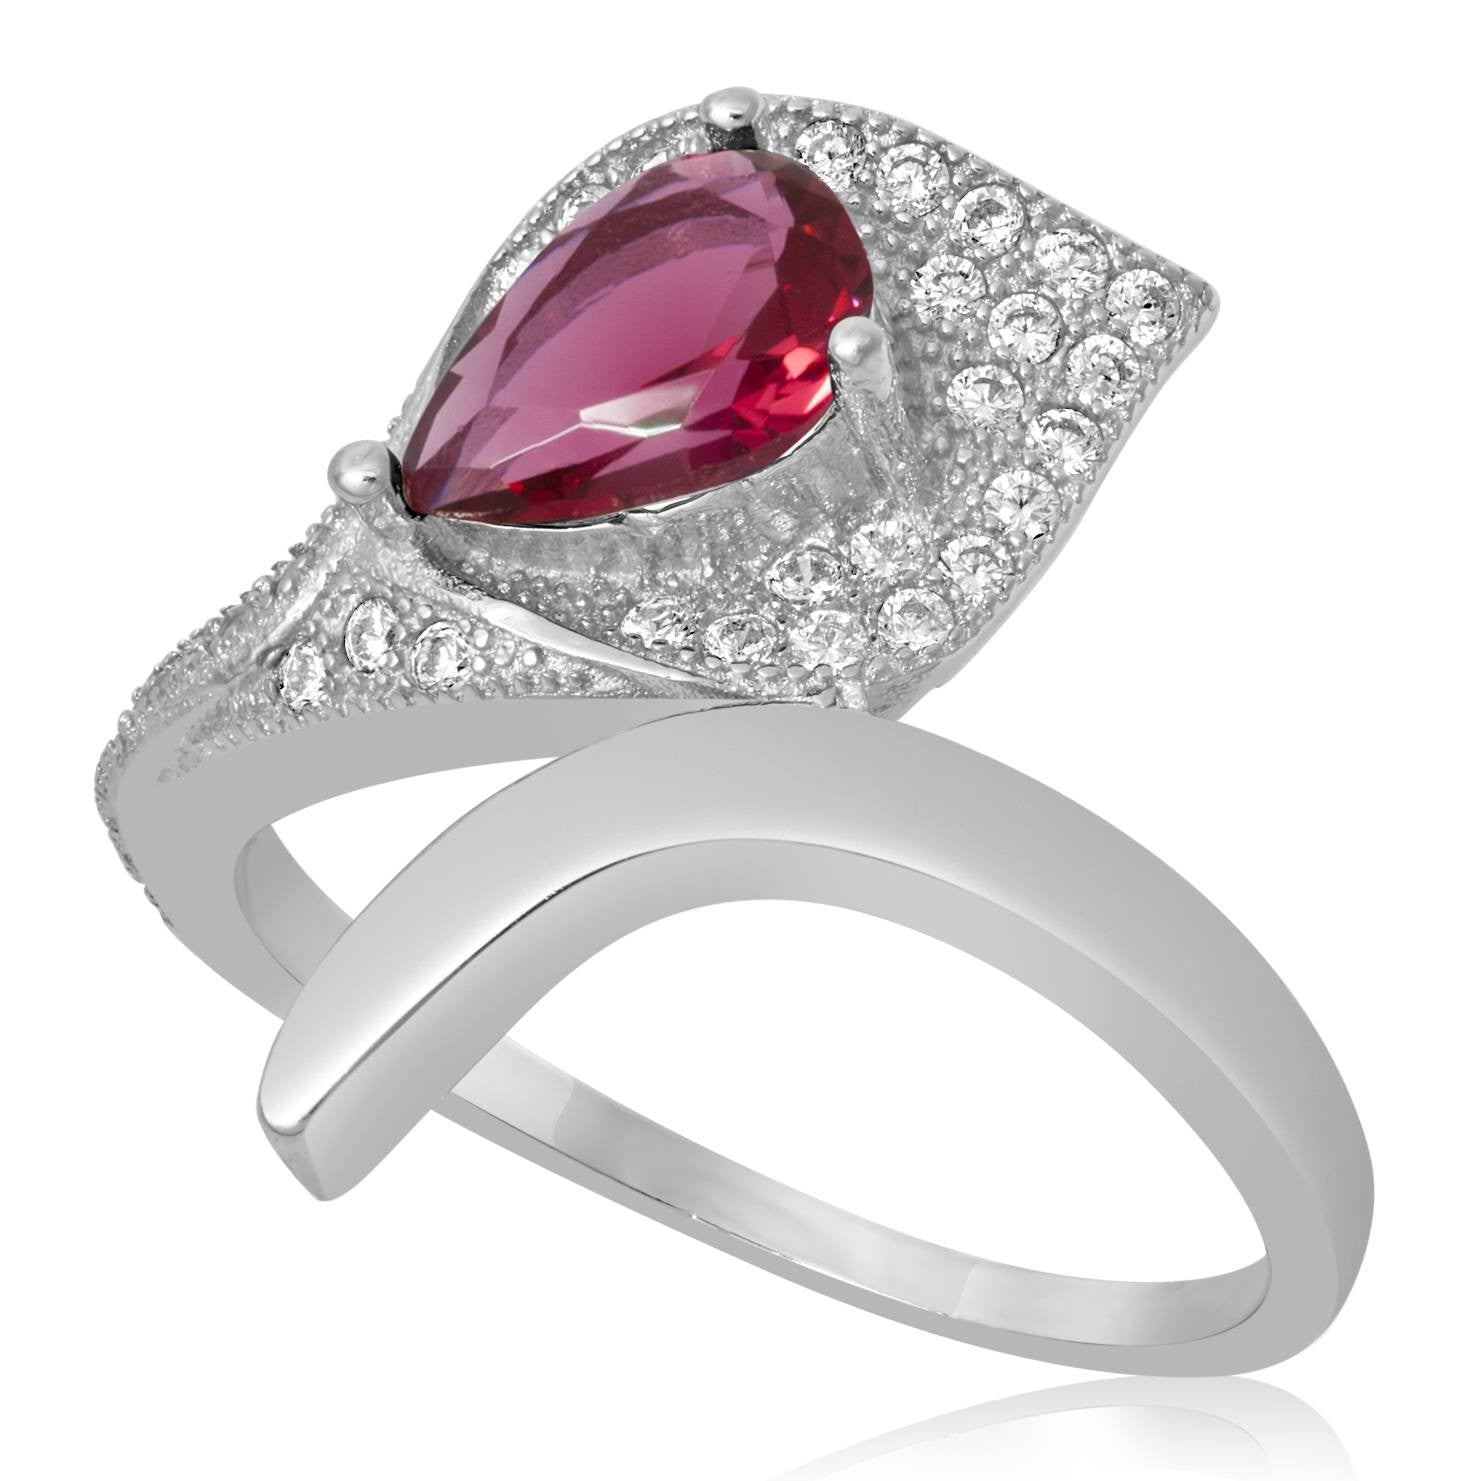 RZ-1652-SR Pear Shape Micropave Cubic Zirconia Ring - Ruby | Teeda